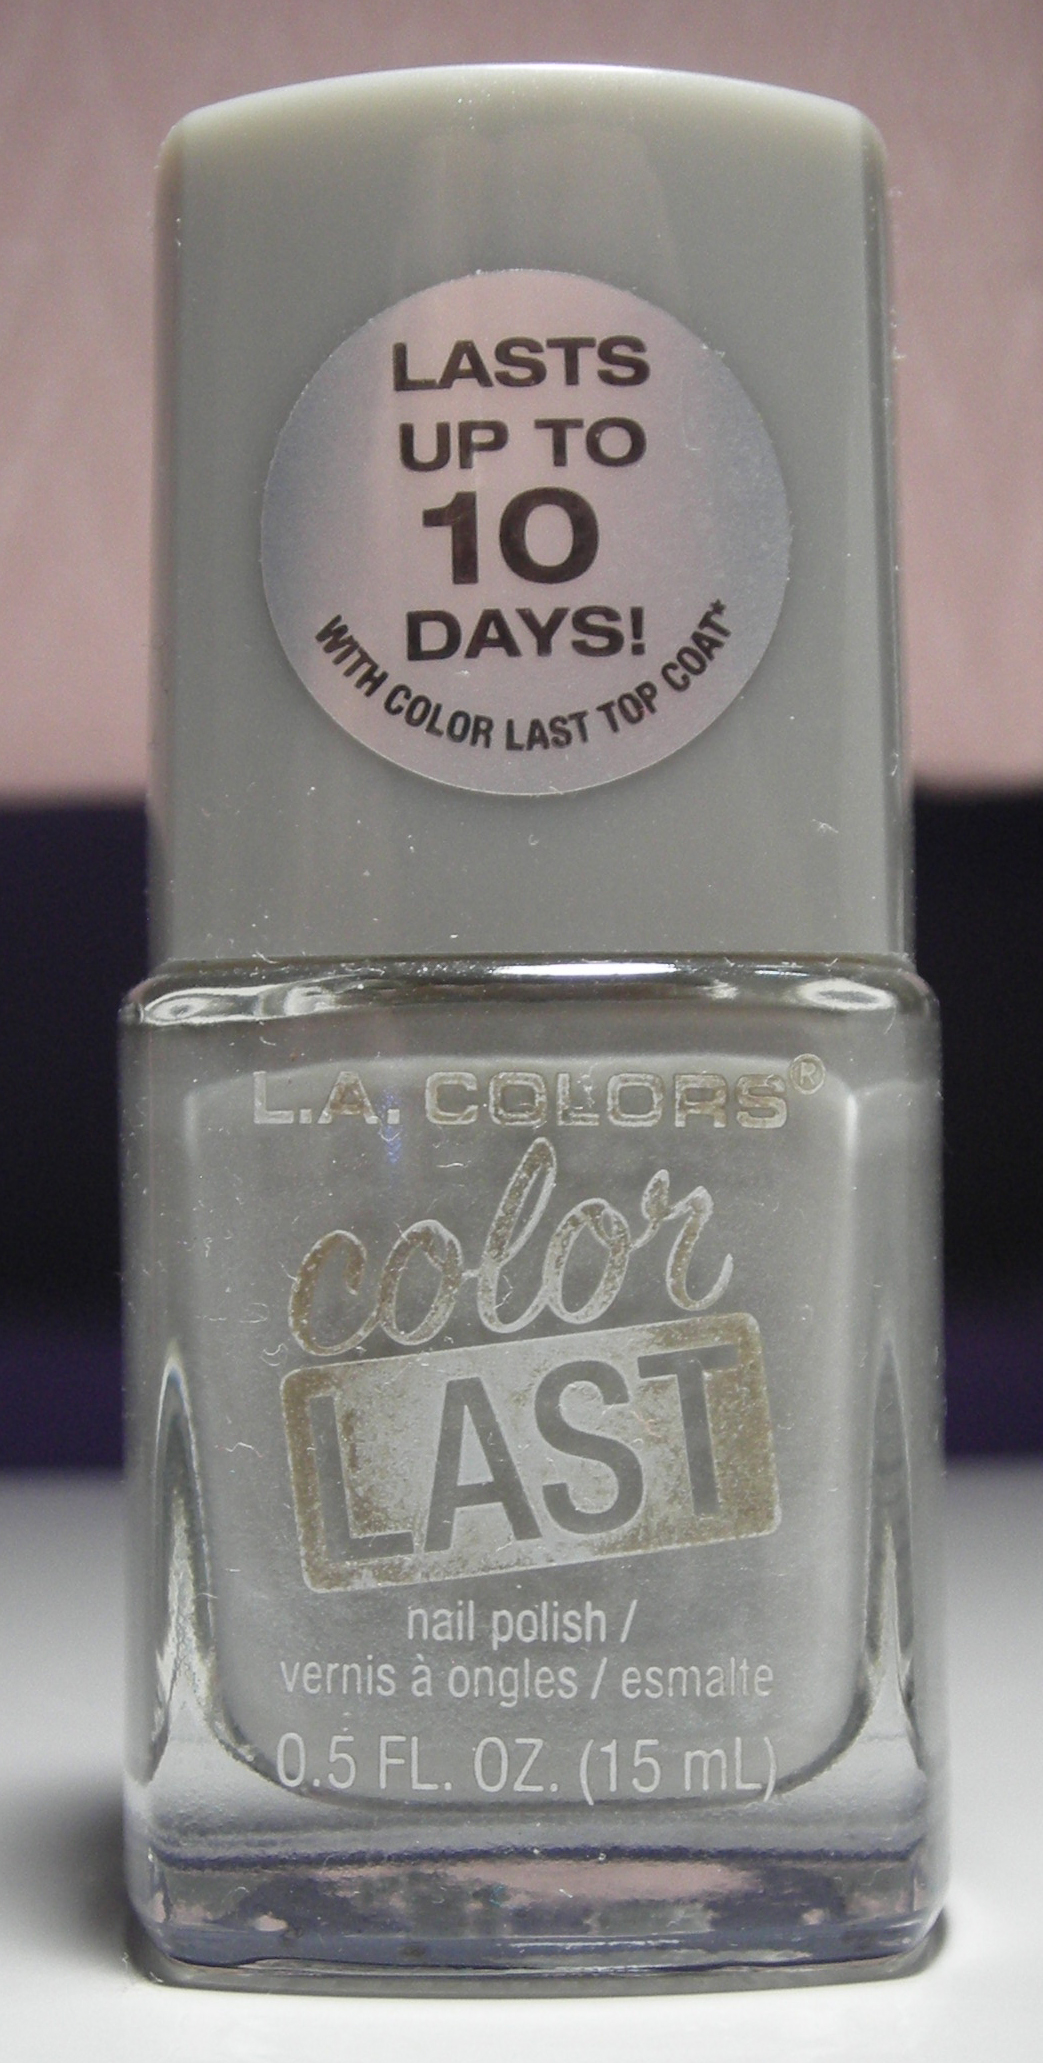 L A  Colors Color Last - Timeless from Nails and a Westie's destash